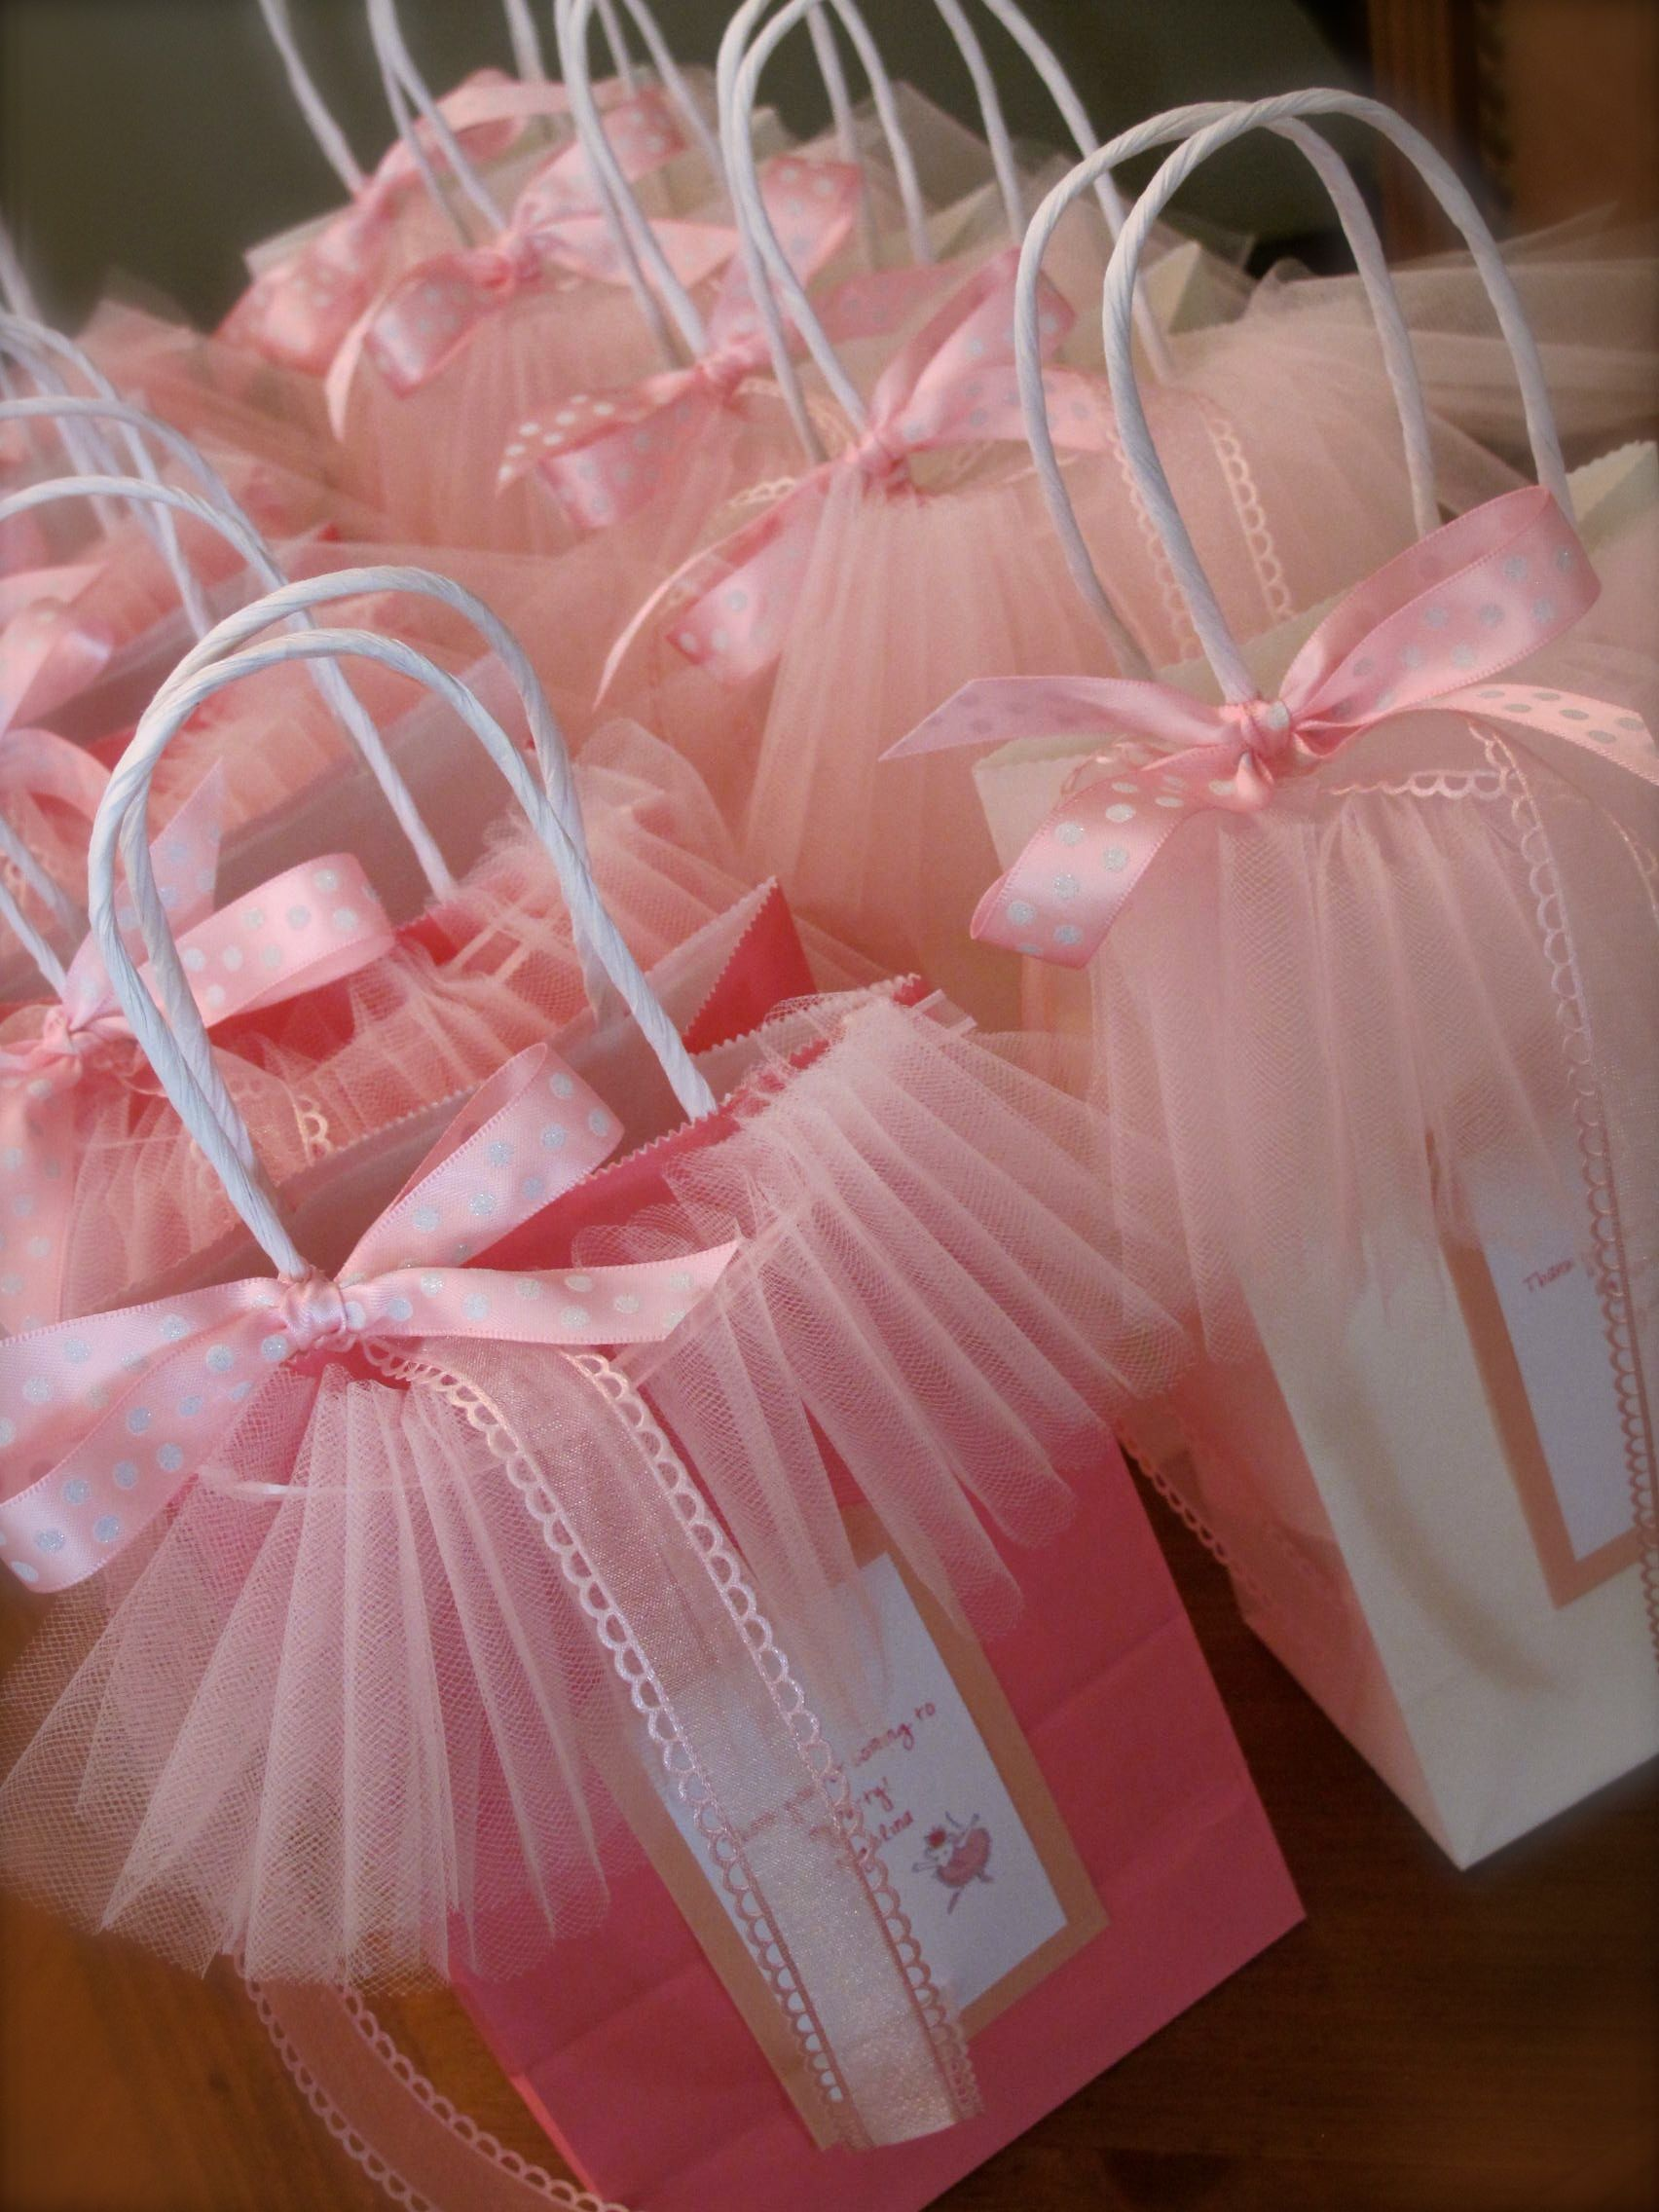 12 Princess Crafts to Do With Your Little Girl | Tutus here, there ...